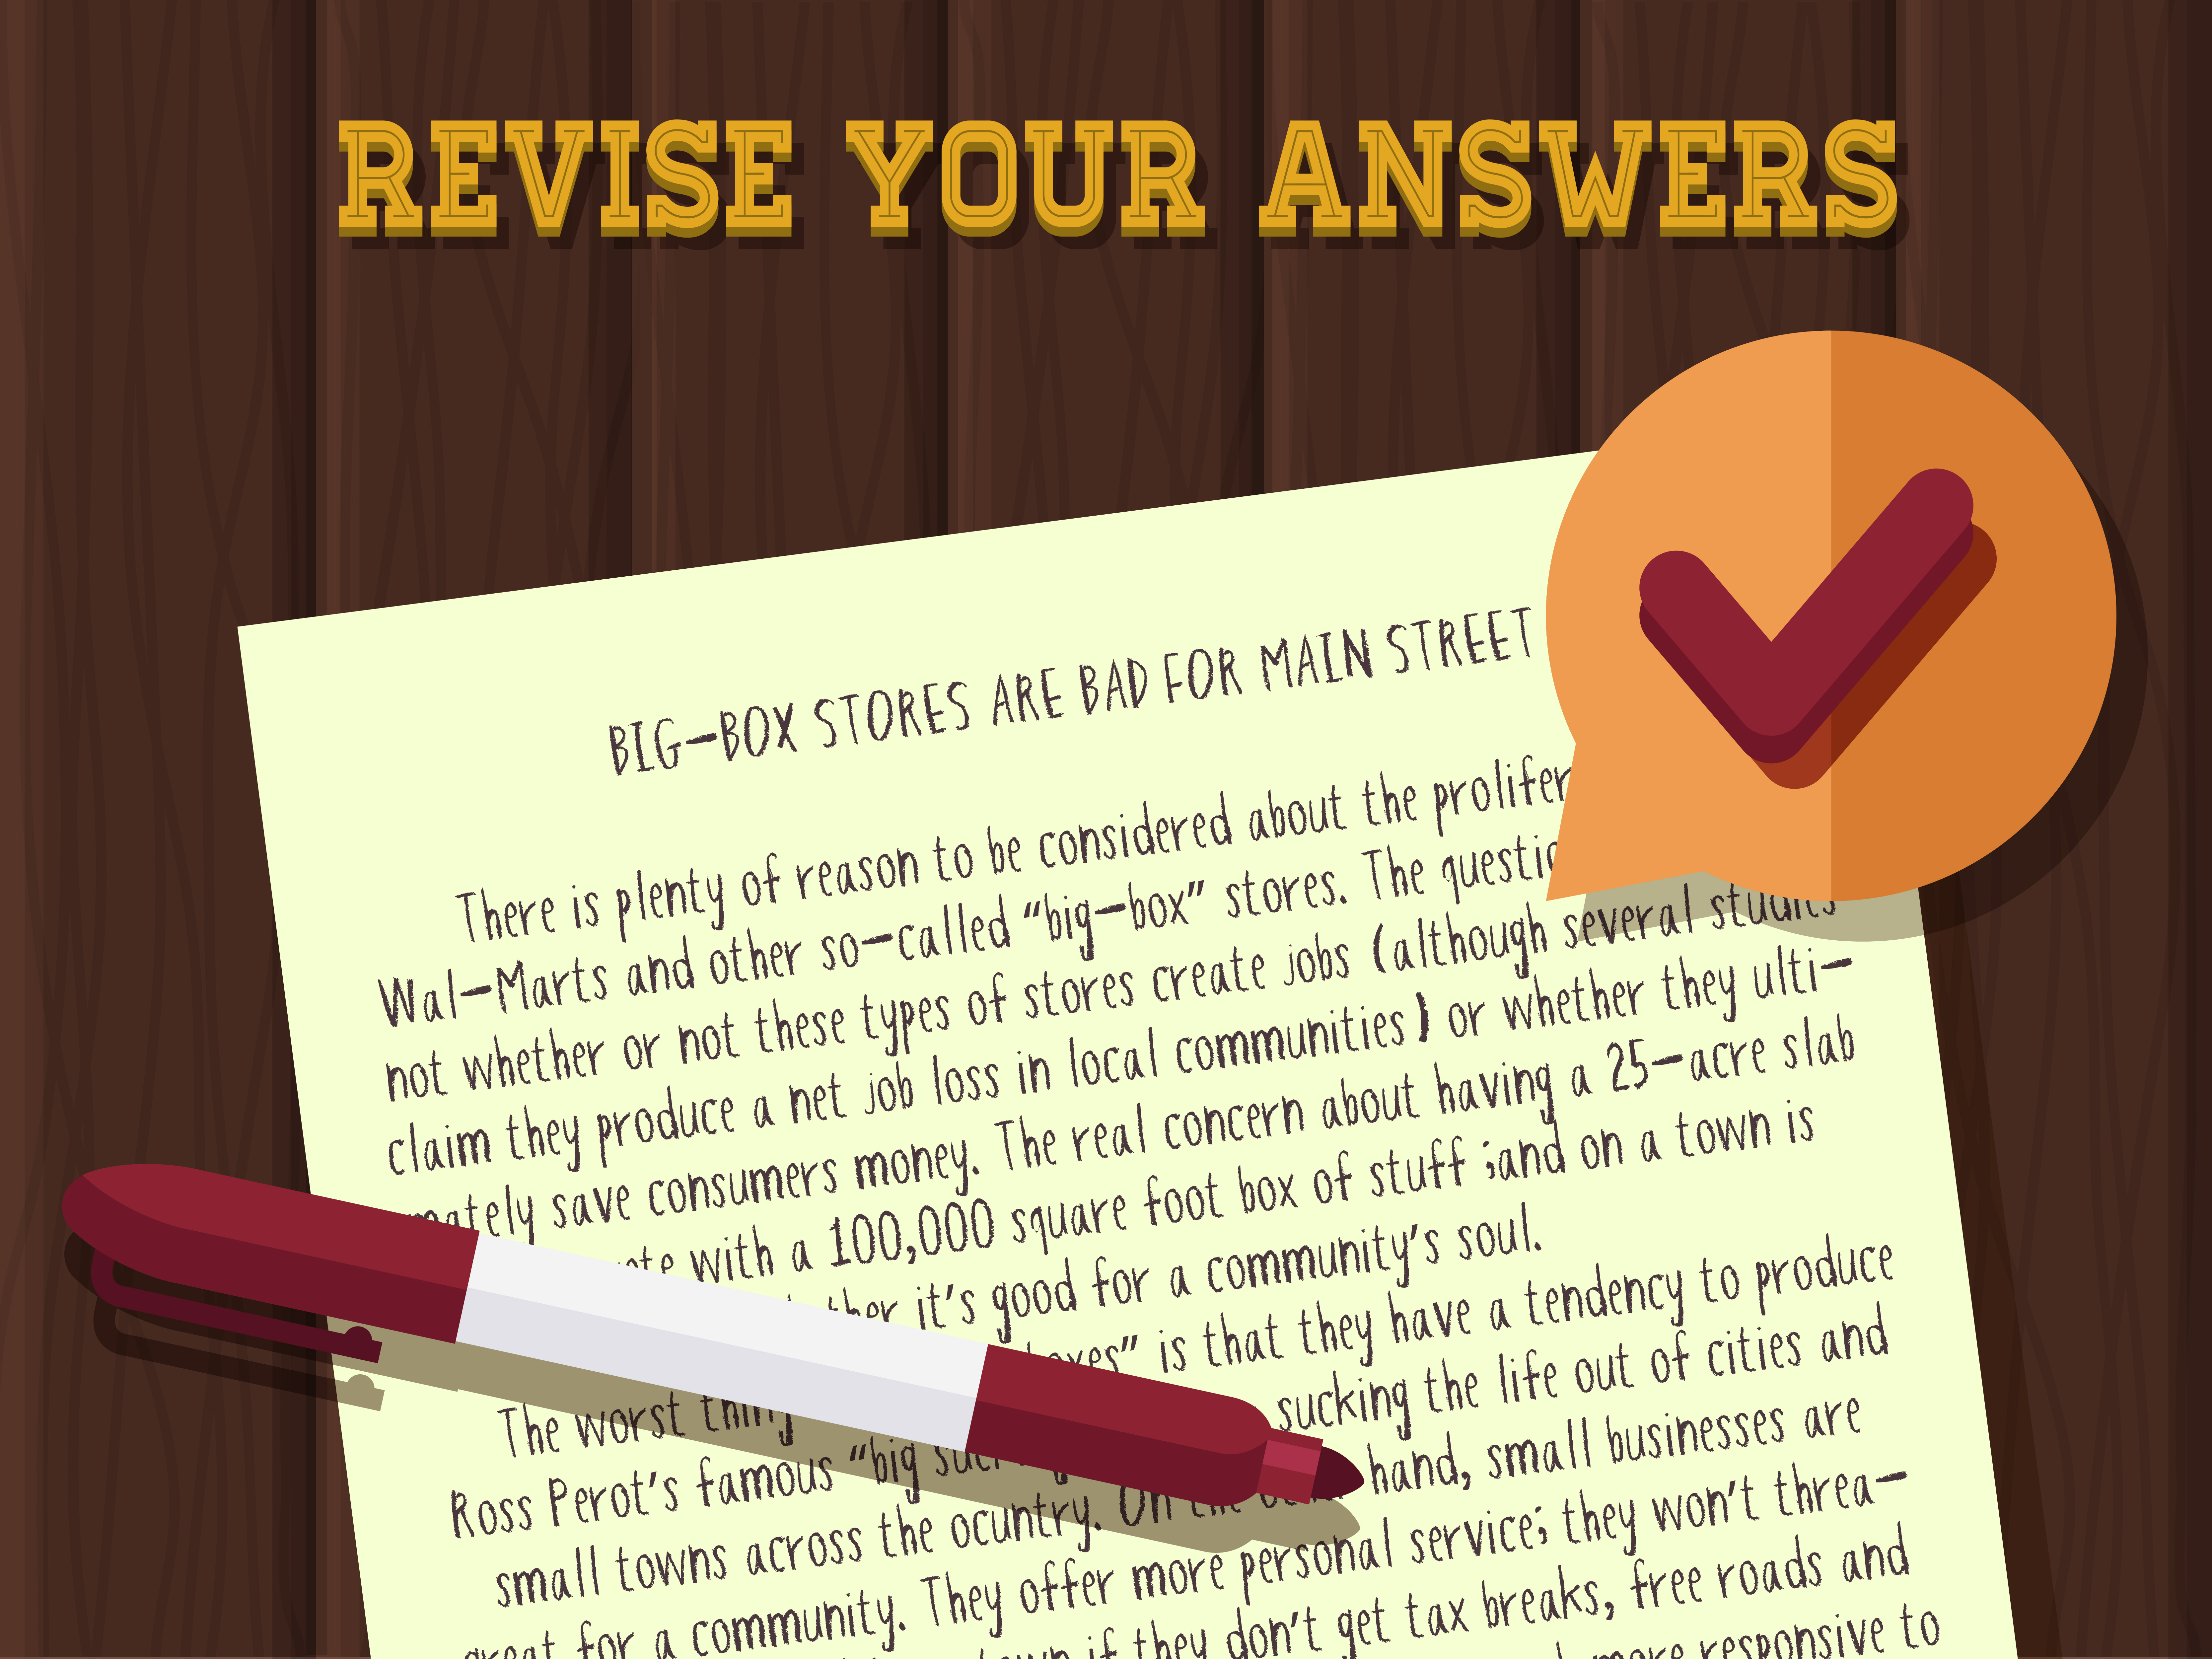 018 Prepare For An Essay Exam Step Example How To Memorise In Unbelievable Hour A Few Hours Remember 1 Full